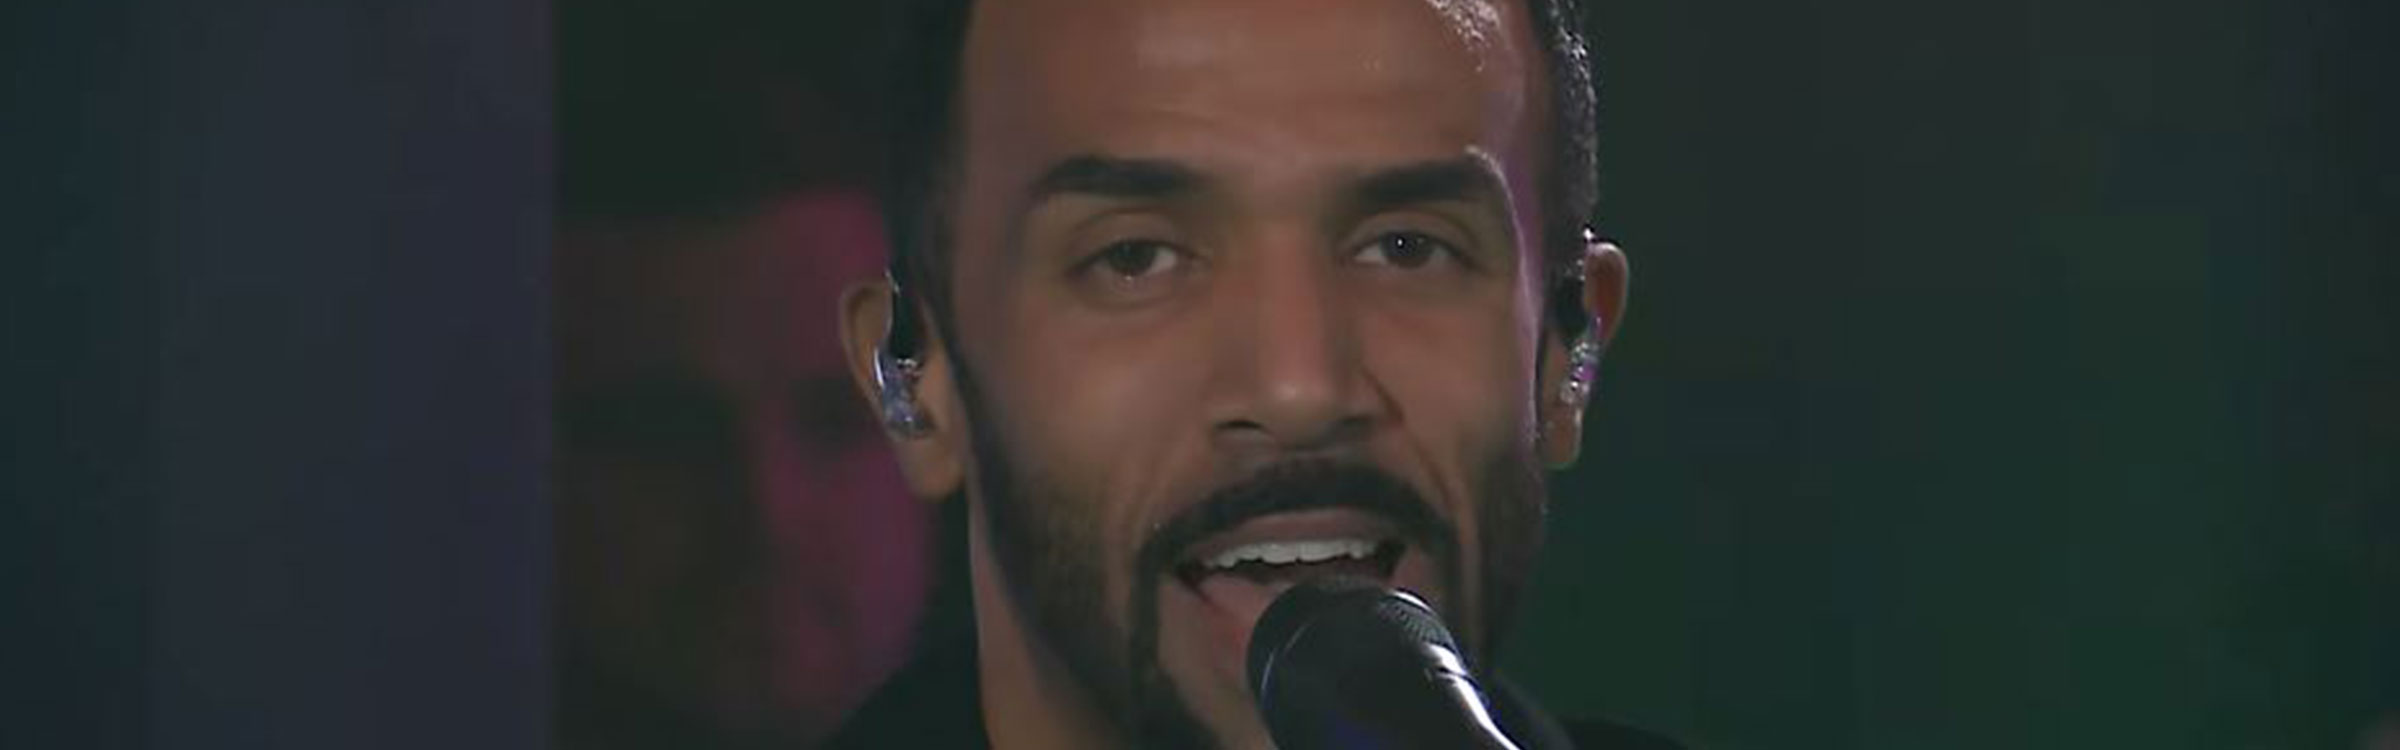 Craig david header bbc